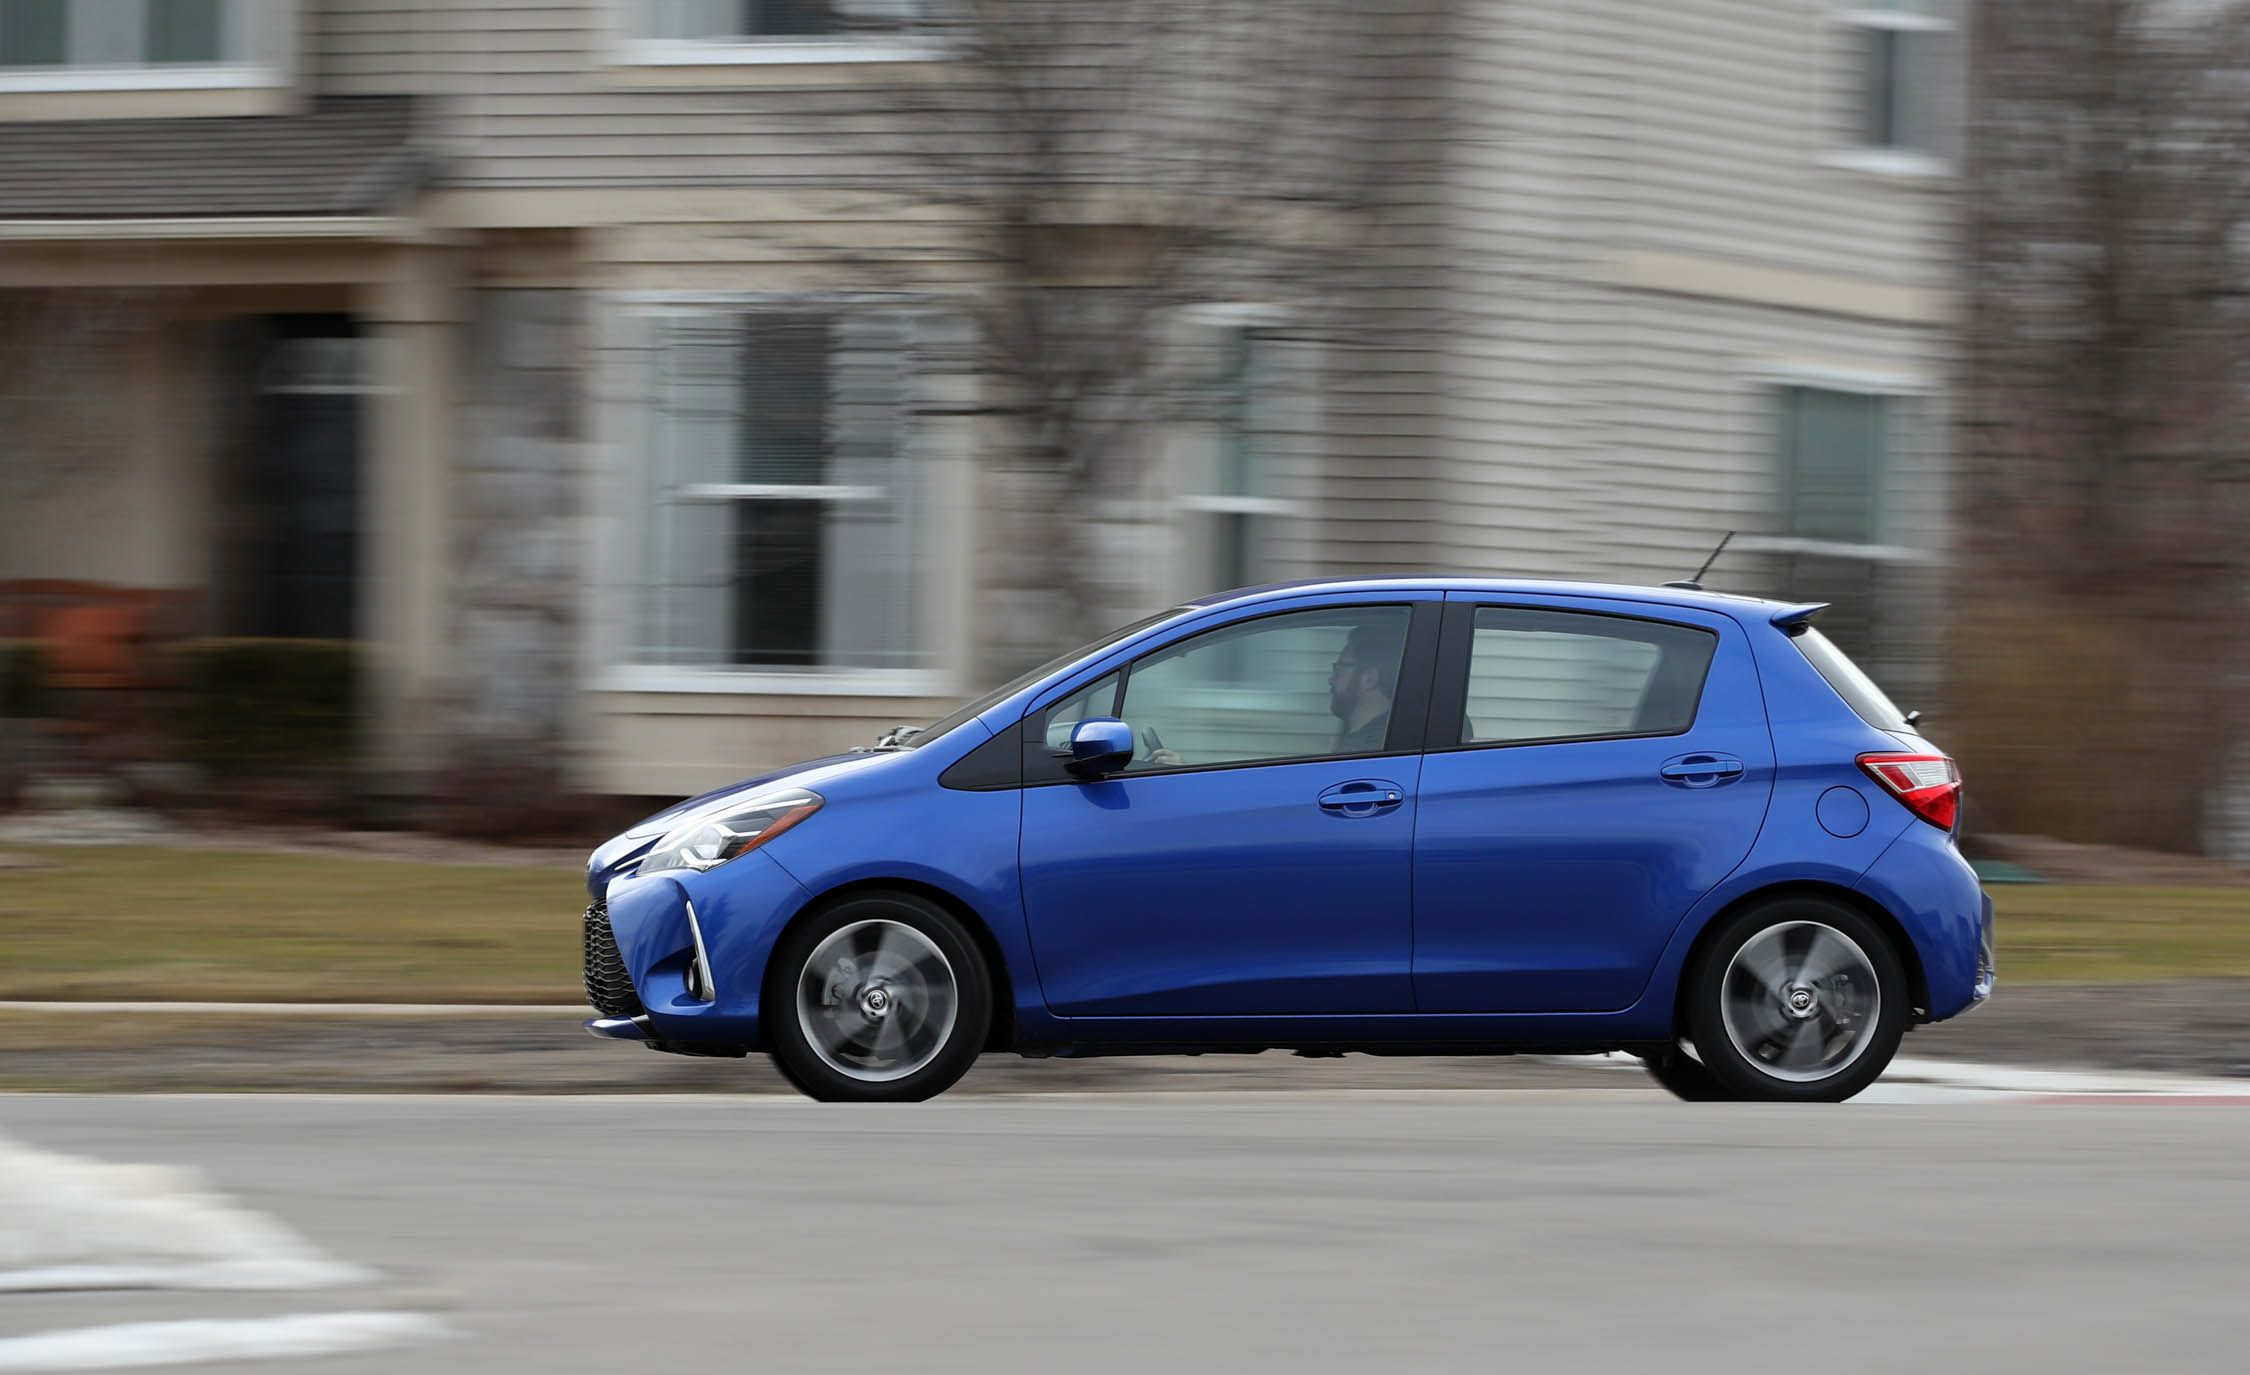 Toyota Yaris - a budget car with a new design